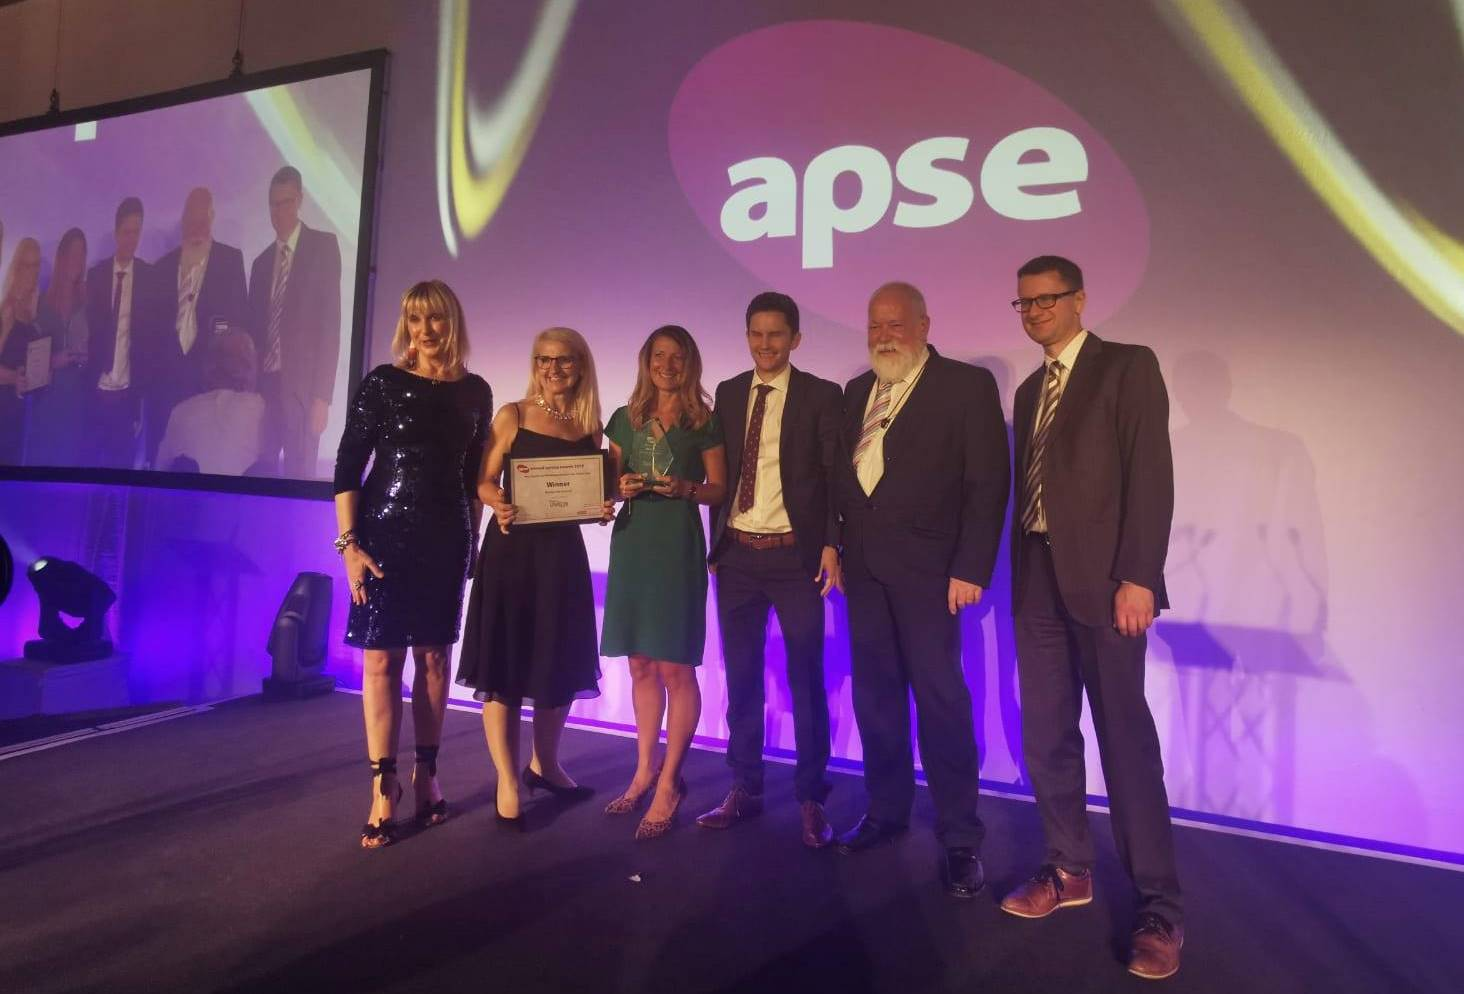 APSE Award being presented to Livewell team